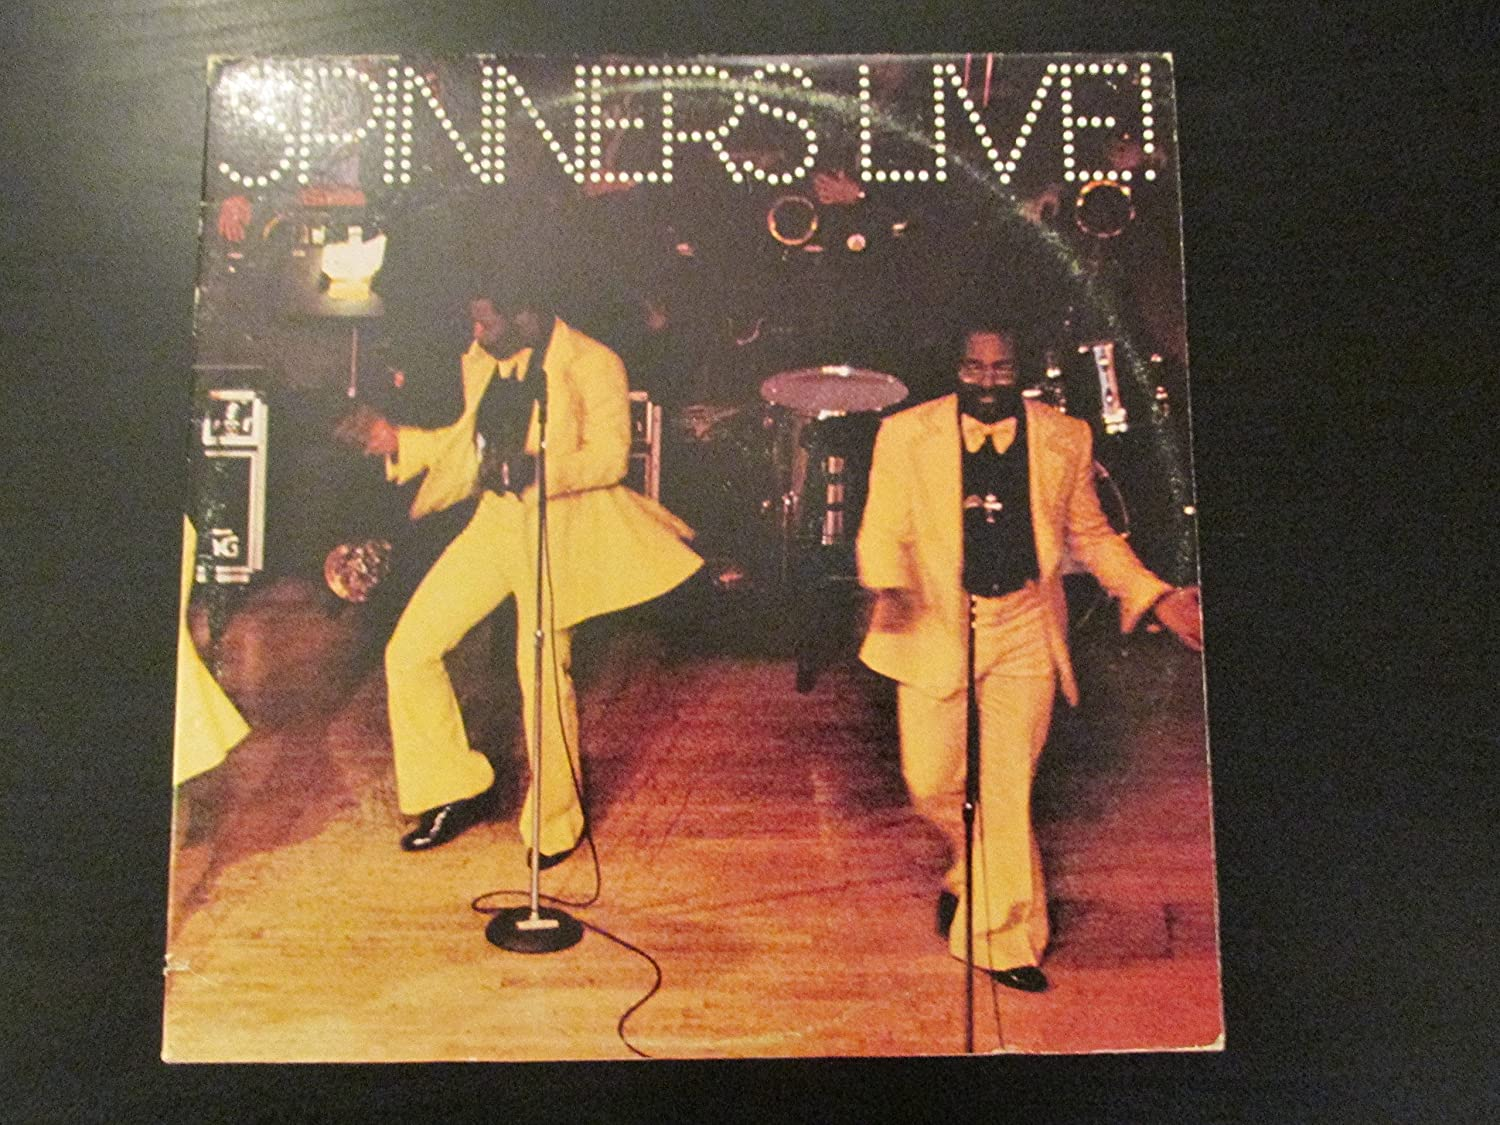 Spinners Live! Cutout, Live, Best of, Original recording, HiFi Sound